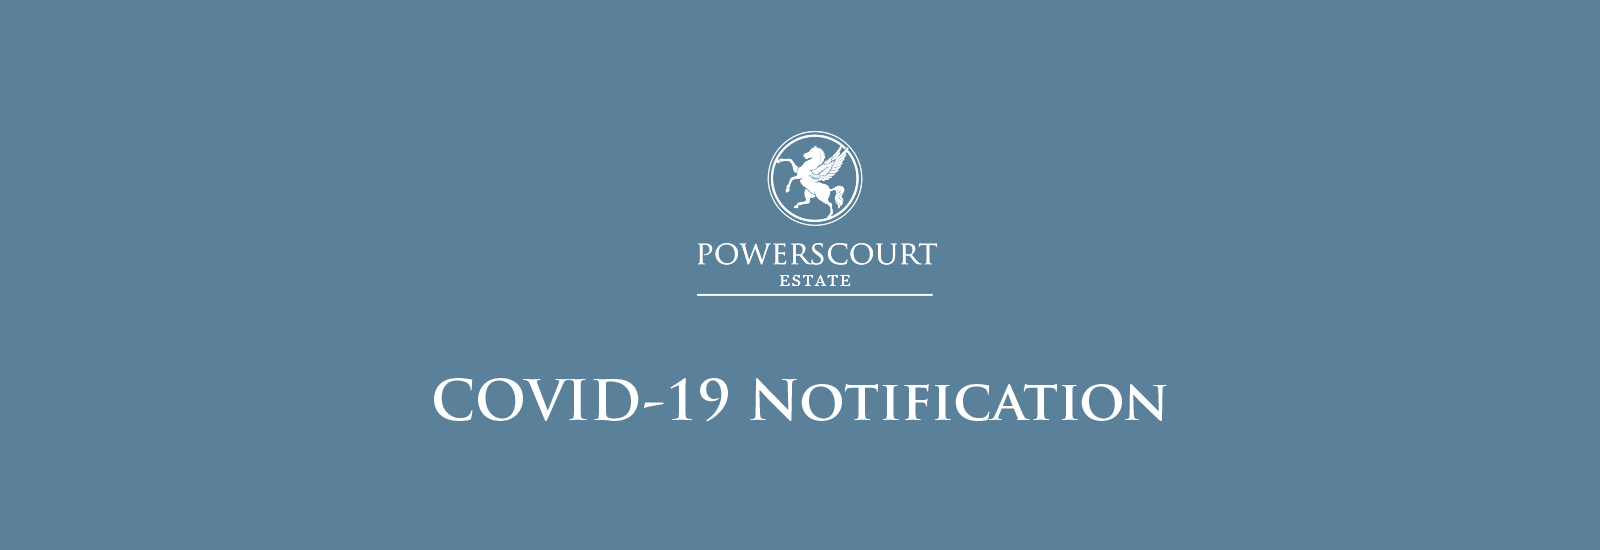 Powerscourt Estate, COVID-19 Notification